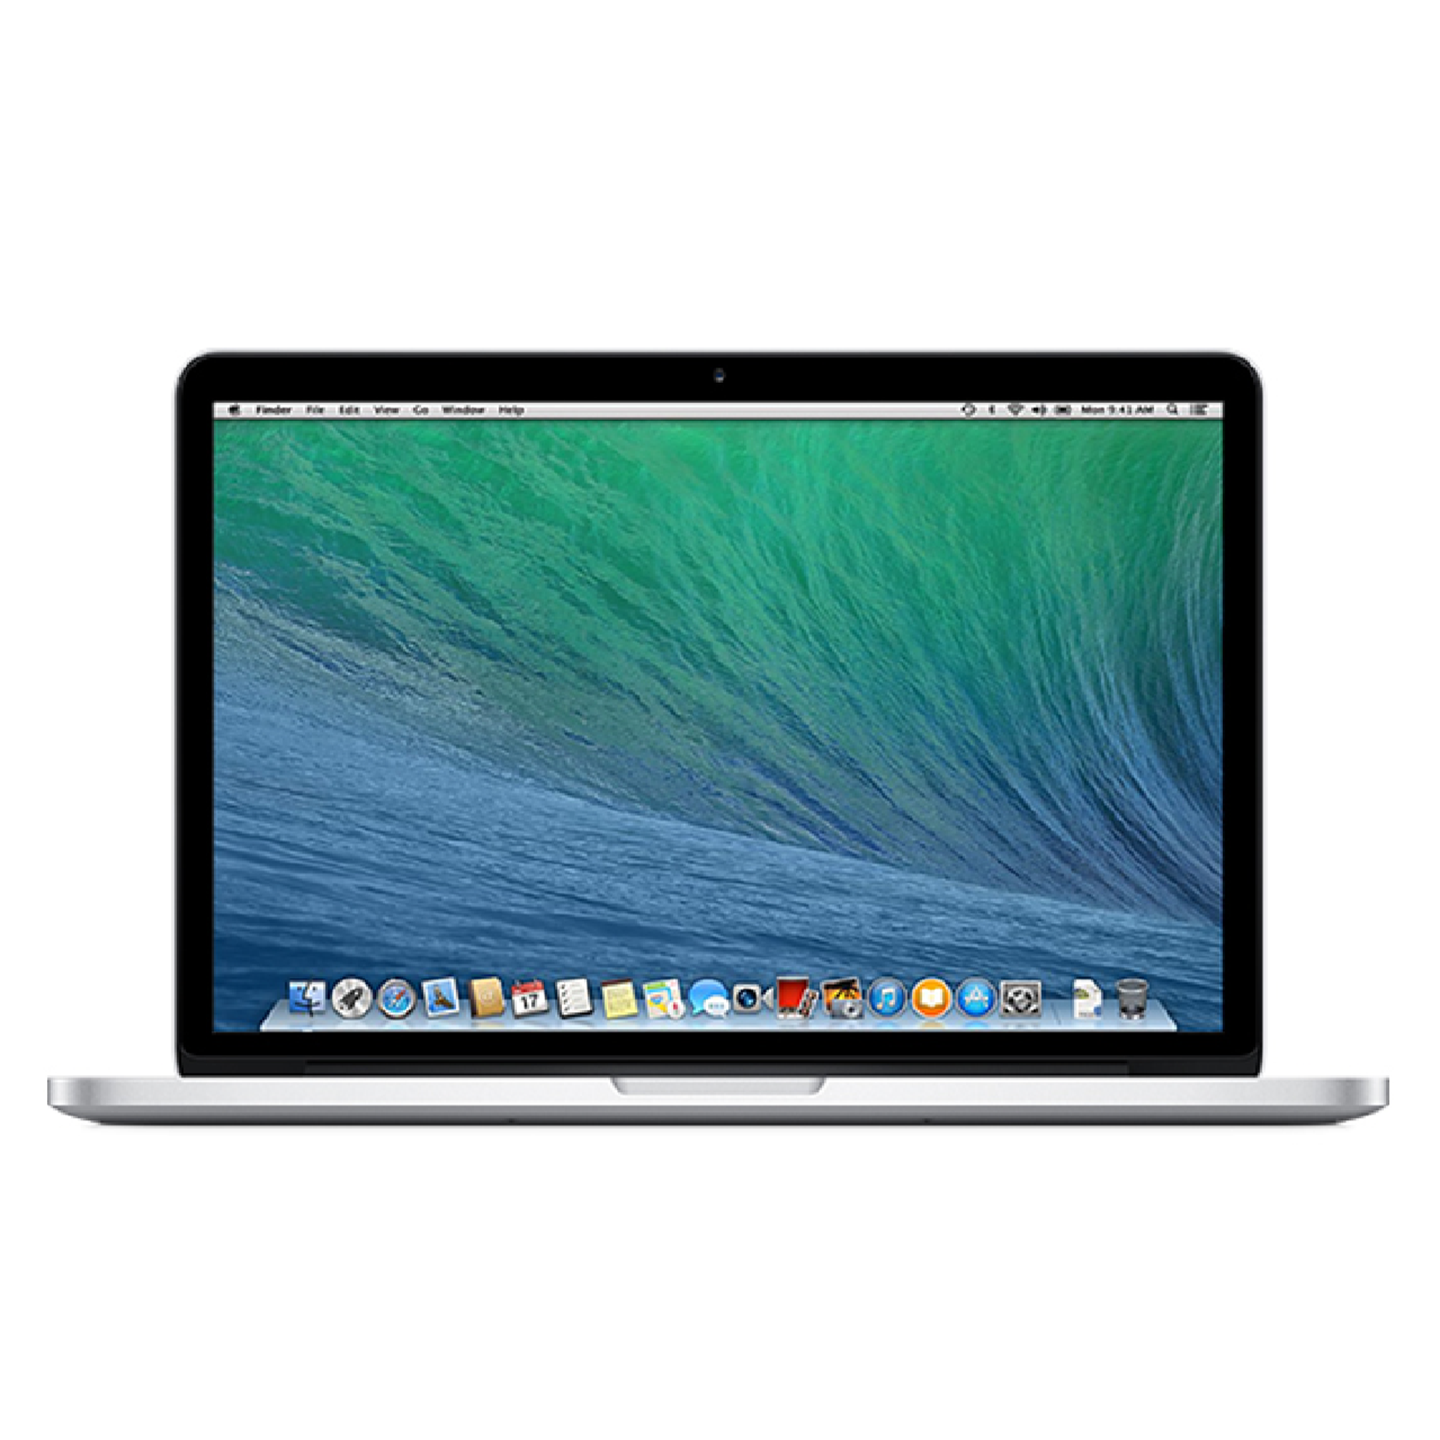 MacBook Pro (Retina, 13-inch, Late2013)Core i5/8GB/SSD256GB E794